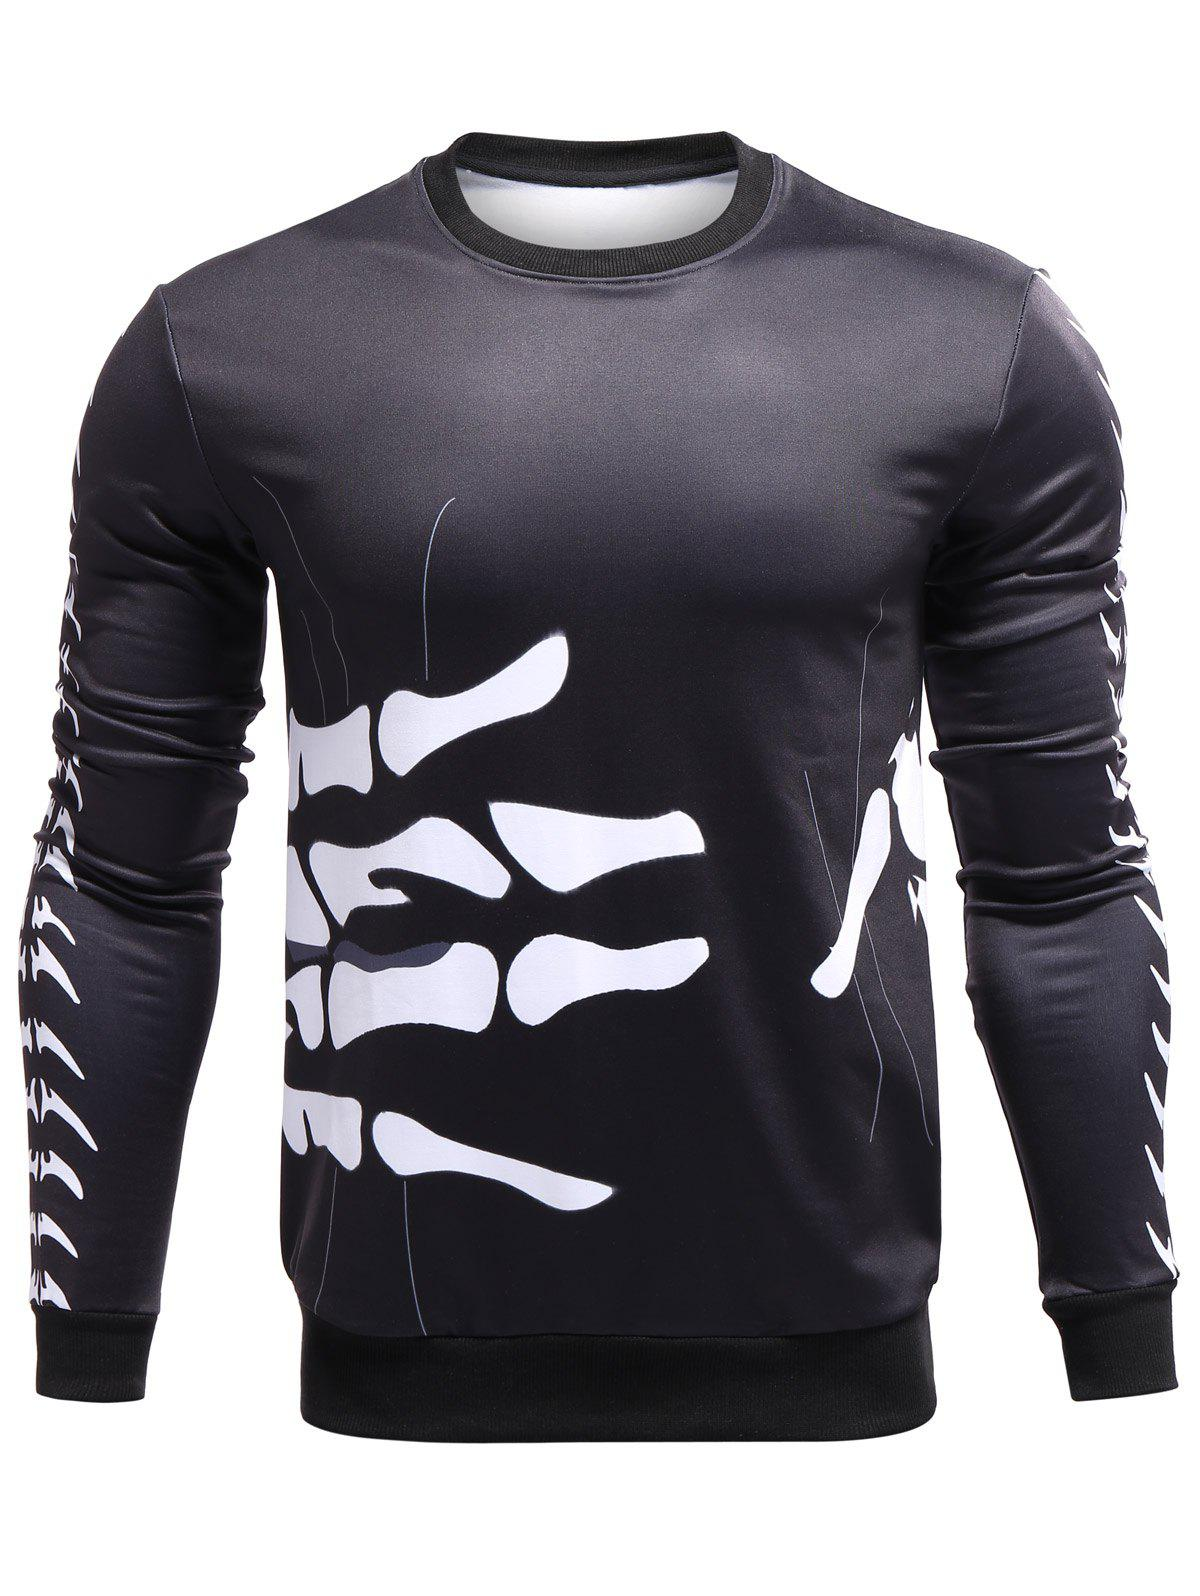 Crew Neck 3D Bones of Hand Surround Print Sweatshirt - BLACK L